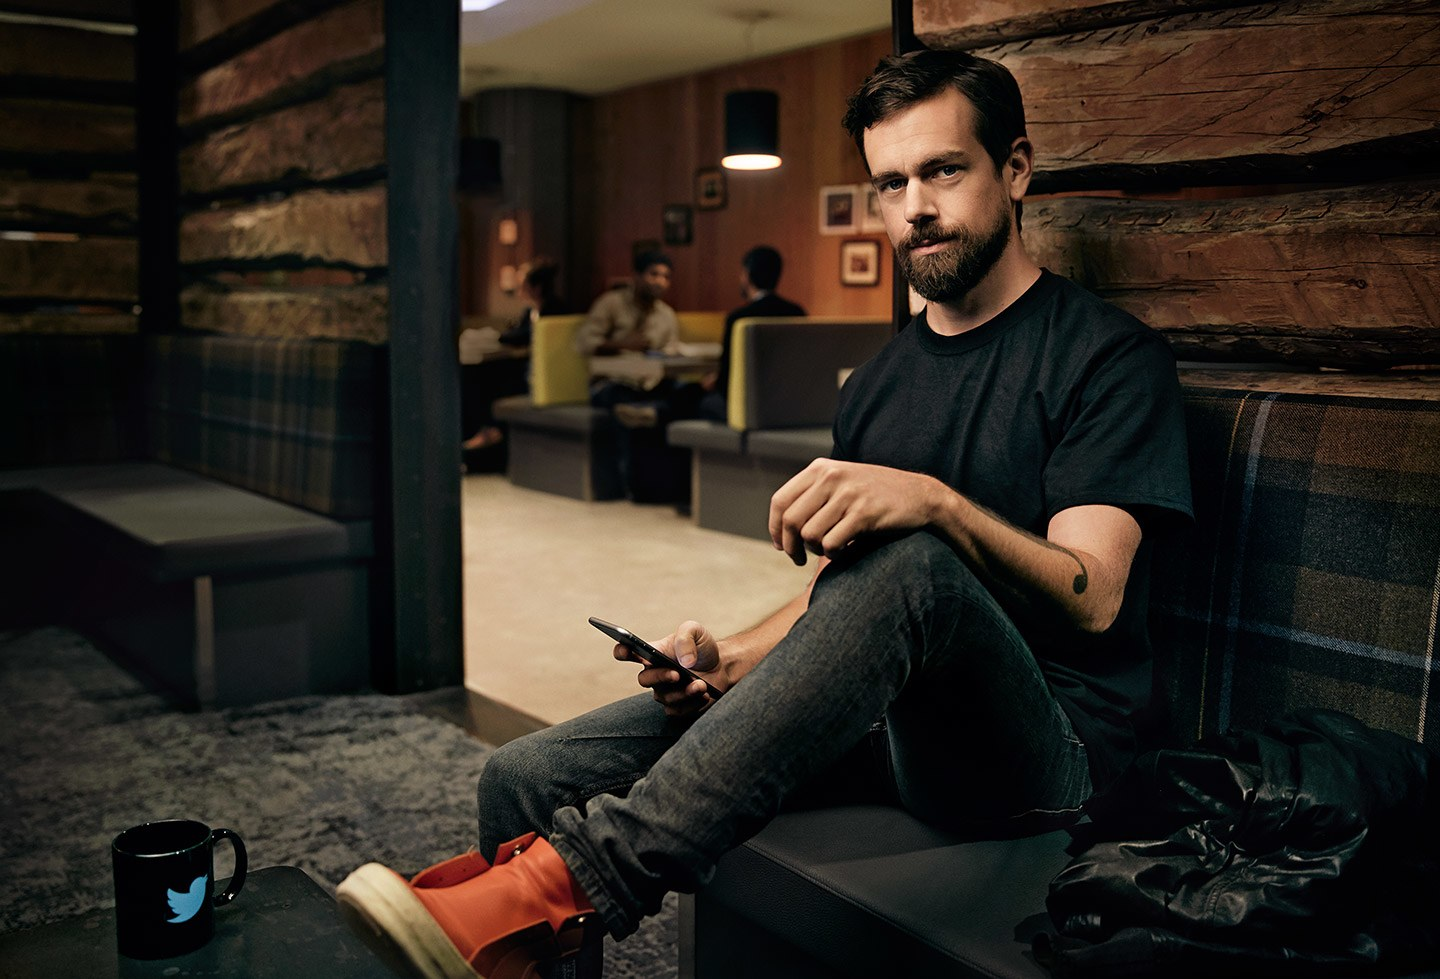 Jack Dorsey sitting on a couch with one leg on the table, there's a mug with the Twitter logo on it on the table.